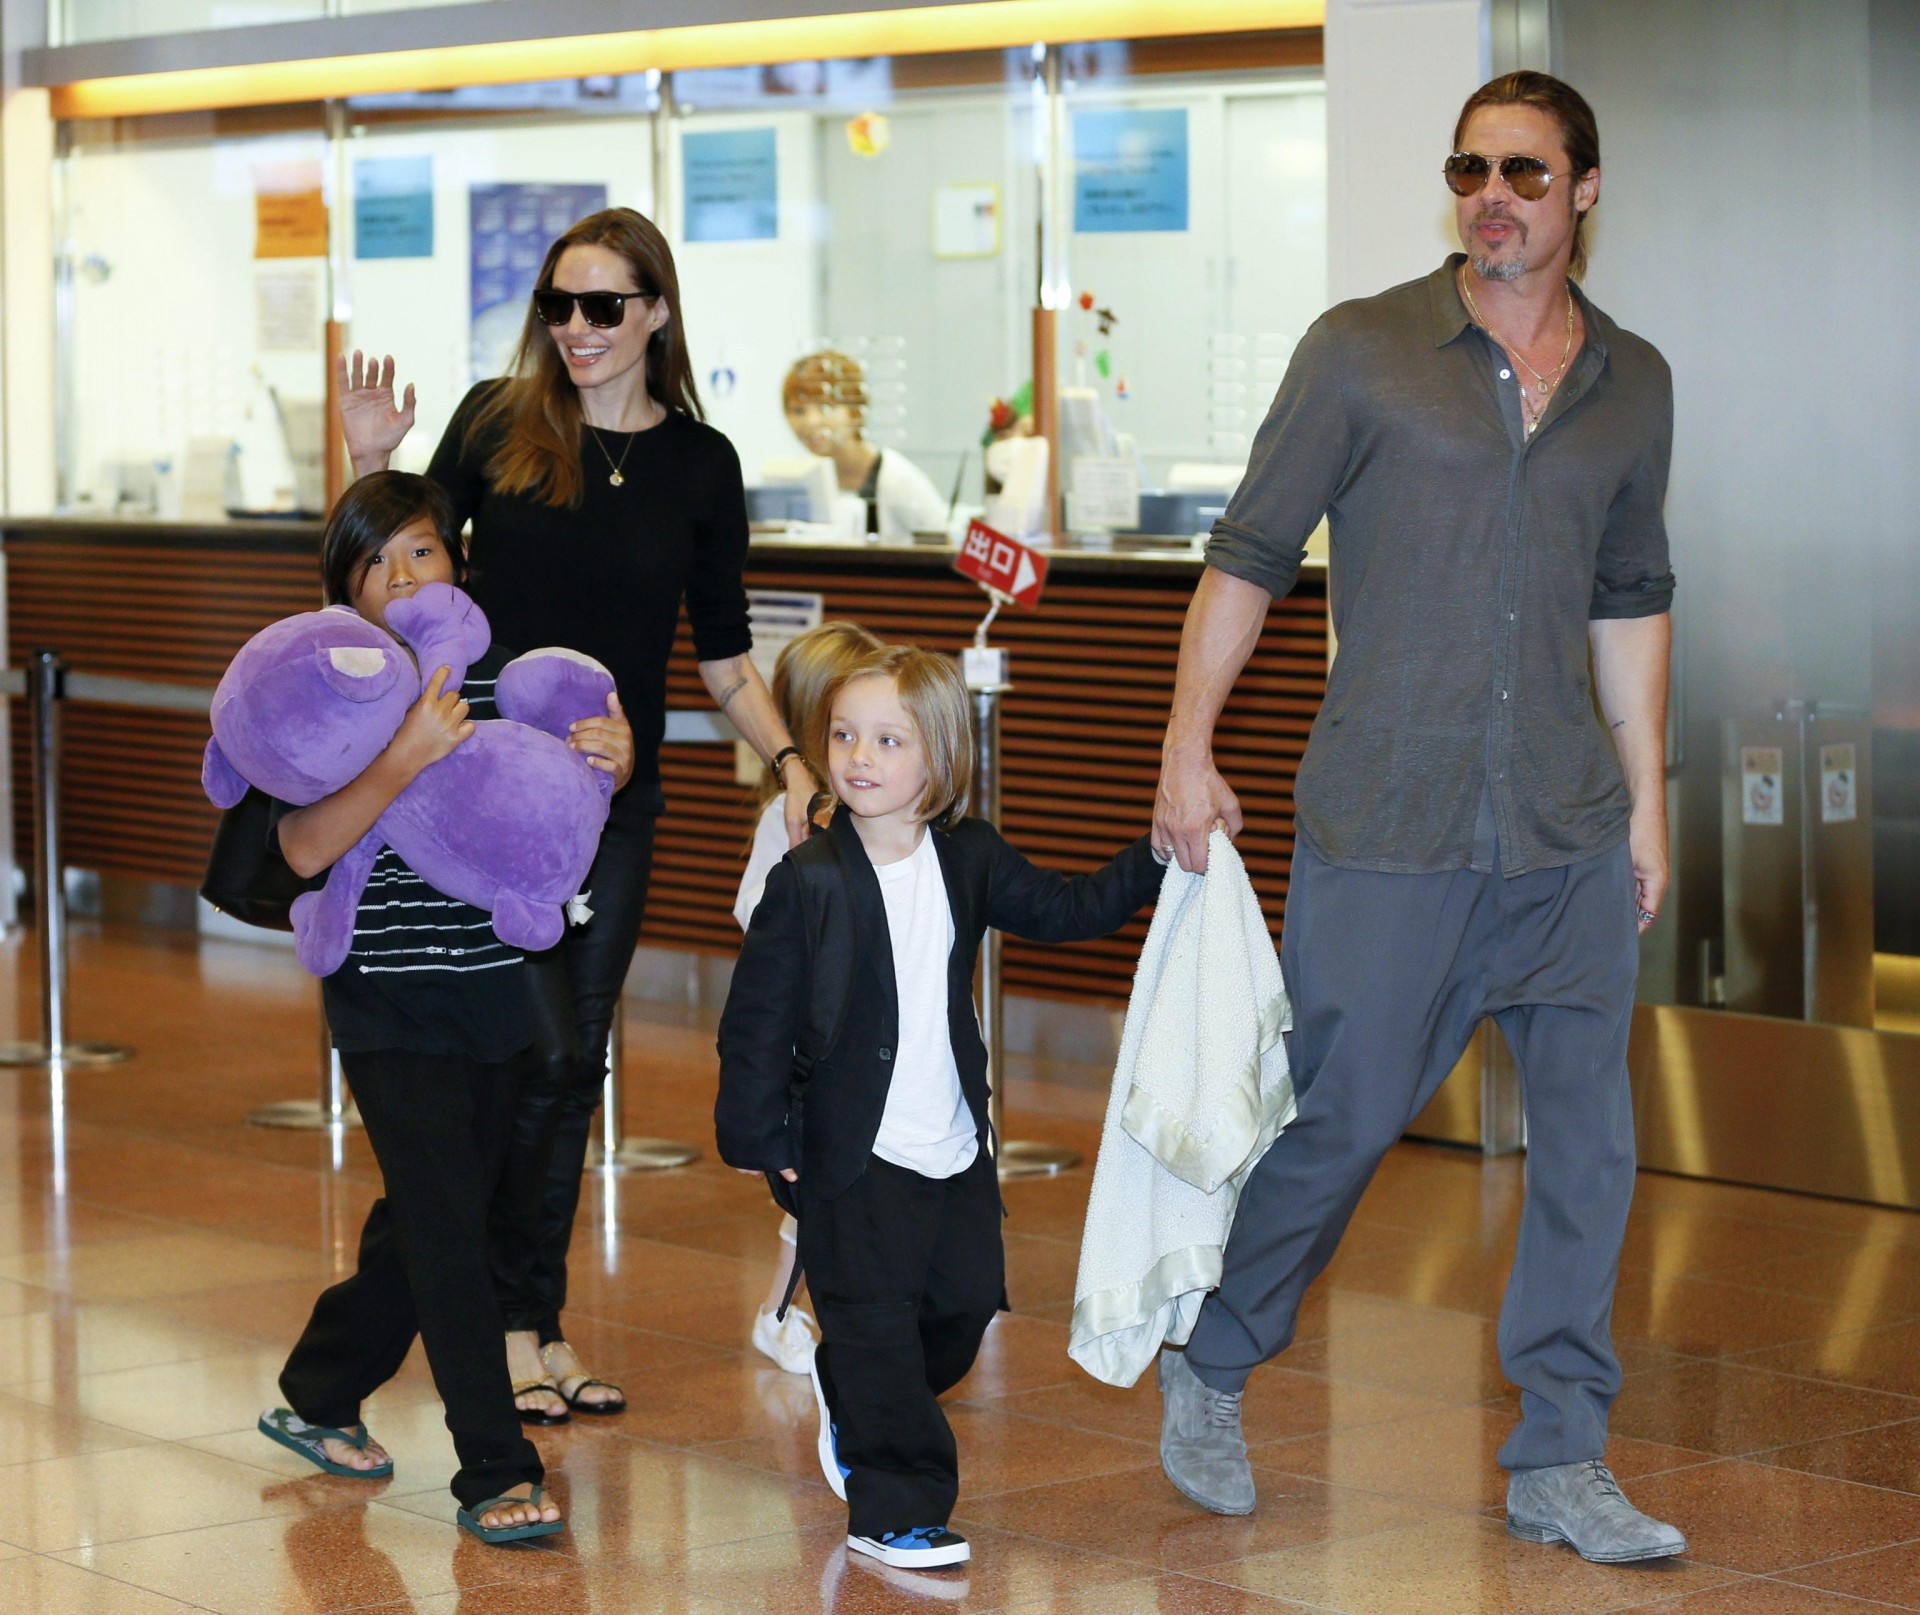 epa05549359 (FILE) A file picture dated 28 July 2013 shows US actors Angelina Jolie (2-L) and Brad Pitt (R) arriving with their children Pax Thien (L), Shiloh (hidden) and Knox Jolie-Pitt at Tokyo International Airport at Haneda, in Tokyo, Japan. According to media reports on 20 September 2016, Angelina Jolie has filed for divorce from her husband Brad Pitt, her lawyer confirmed. EPA/KIMIMASA MAYAMA